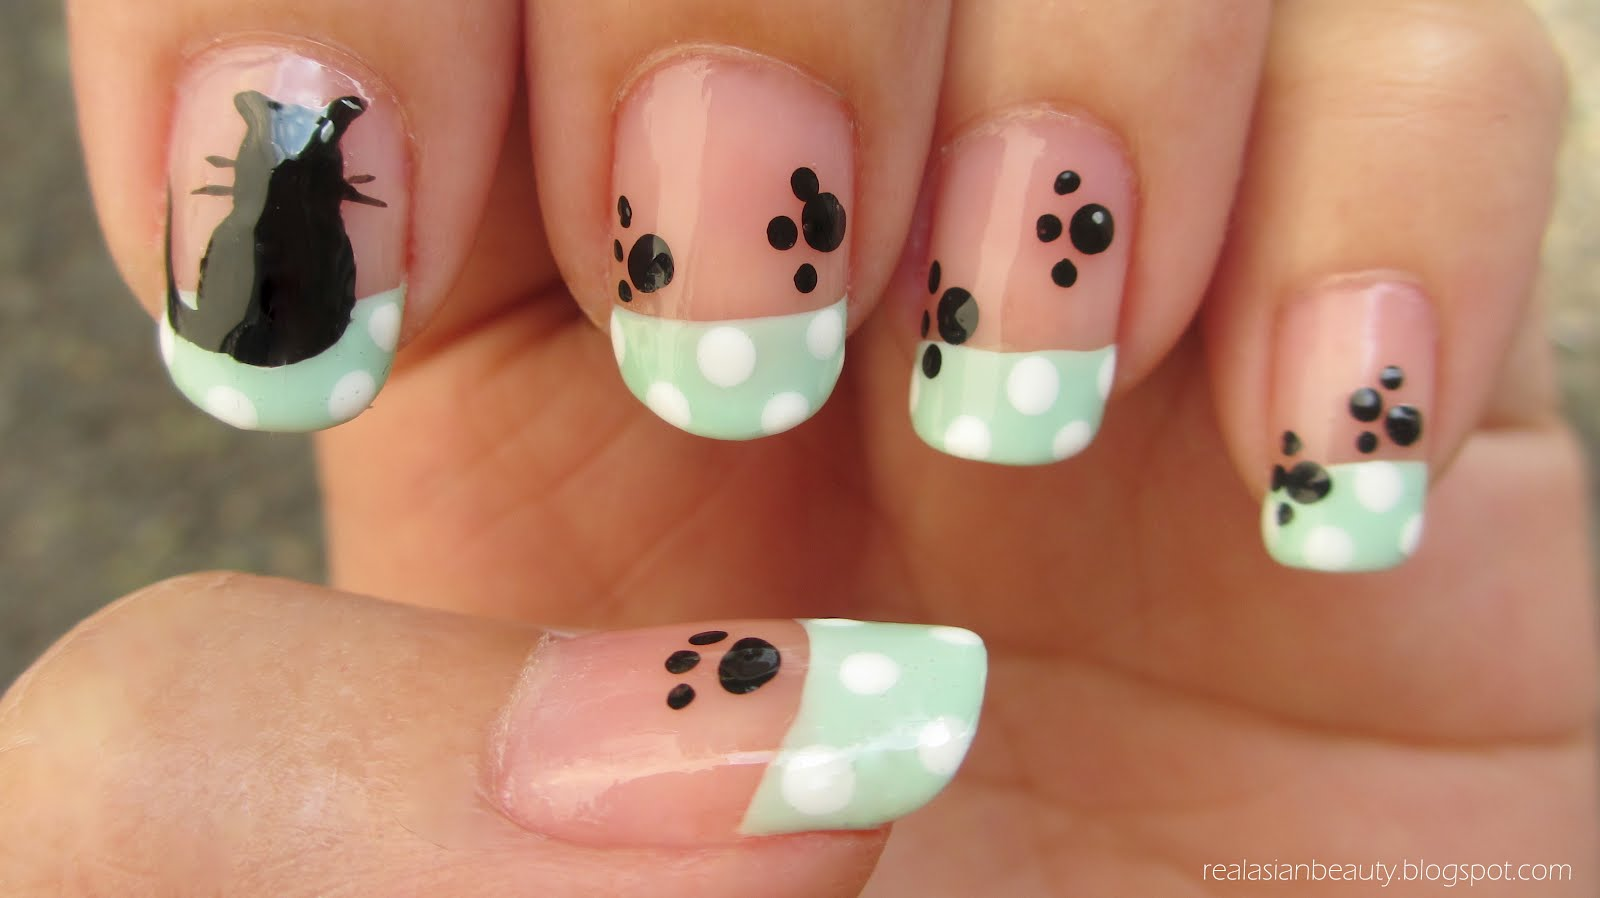 Real Asian Beauty: Kitten and Paws Nail Art